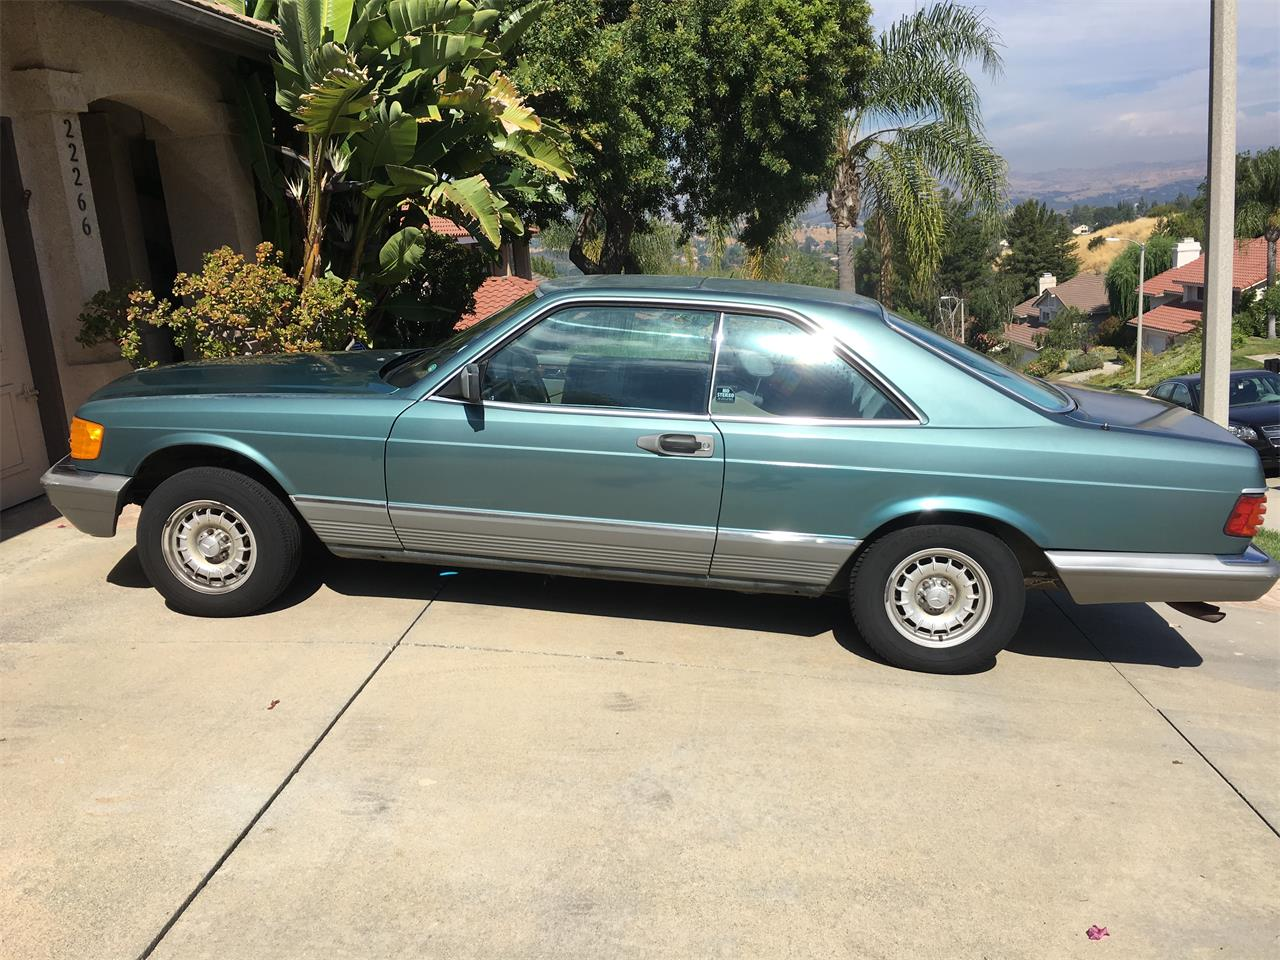 Large Picture of 1985 Mercedes-Benz 500SEC located in California - $7,000.00 Offered by a Private Seller - LUCI